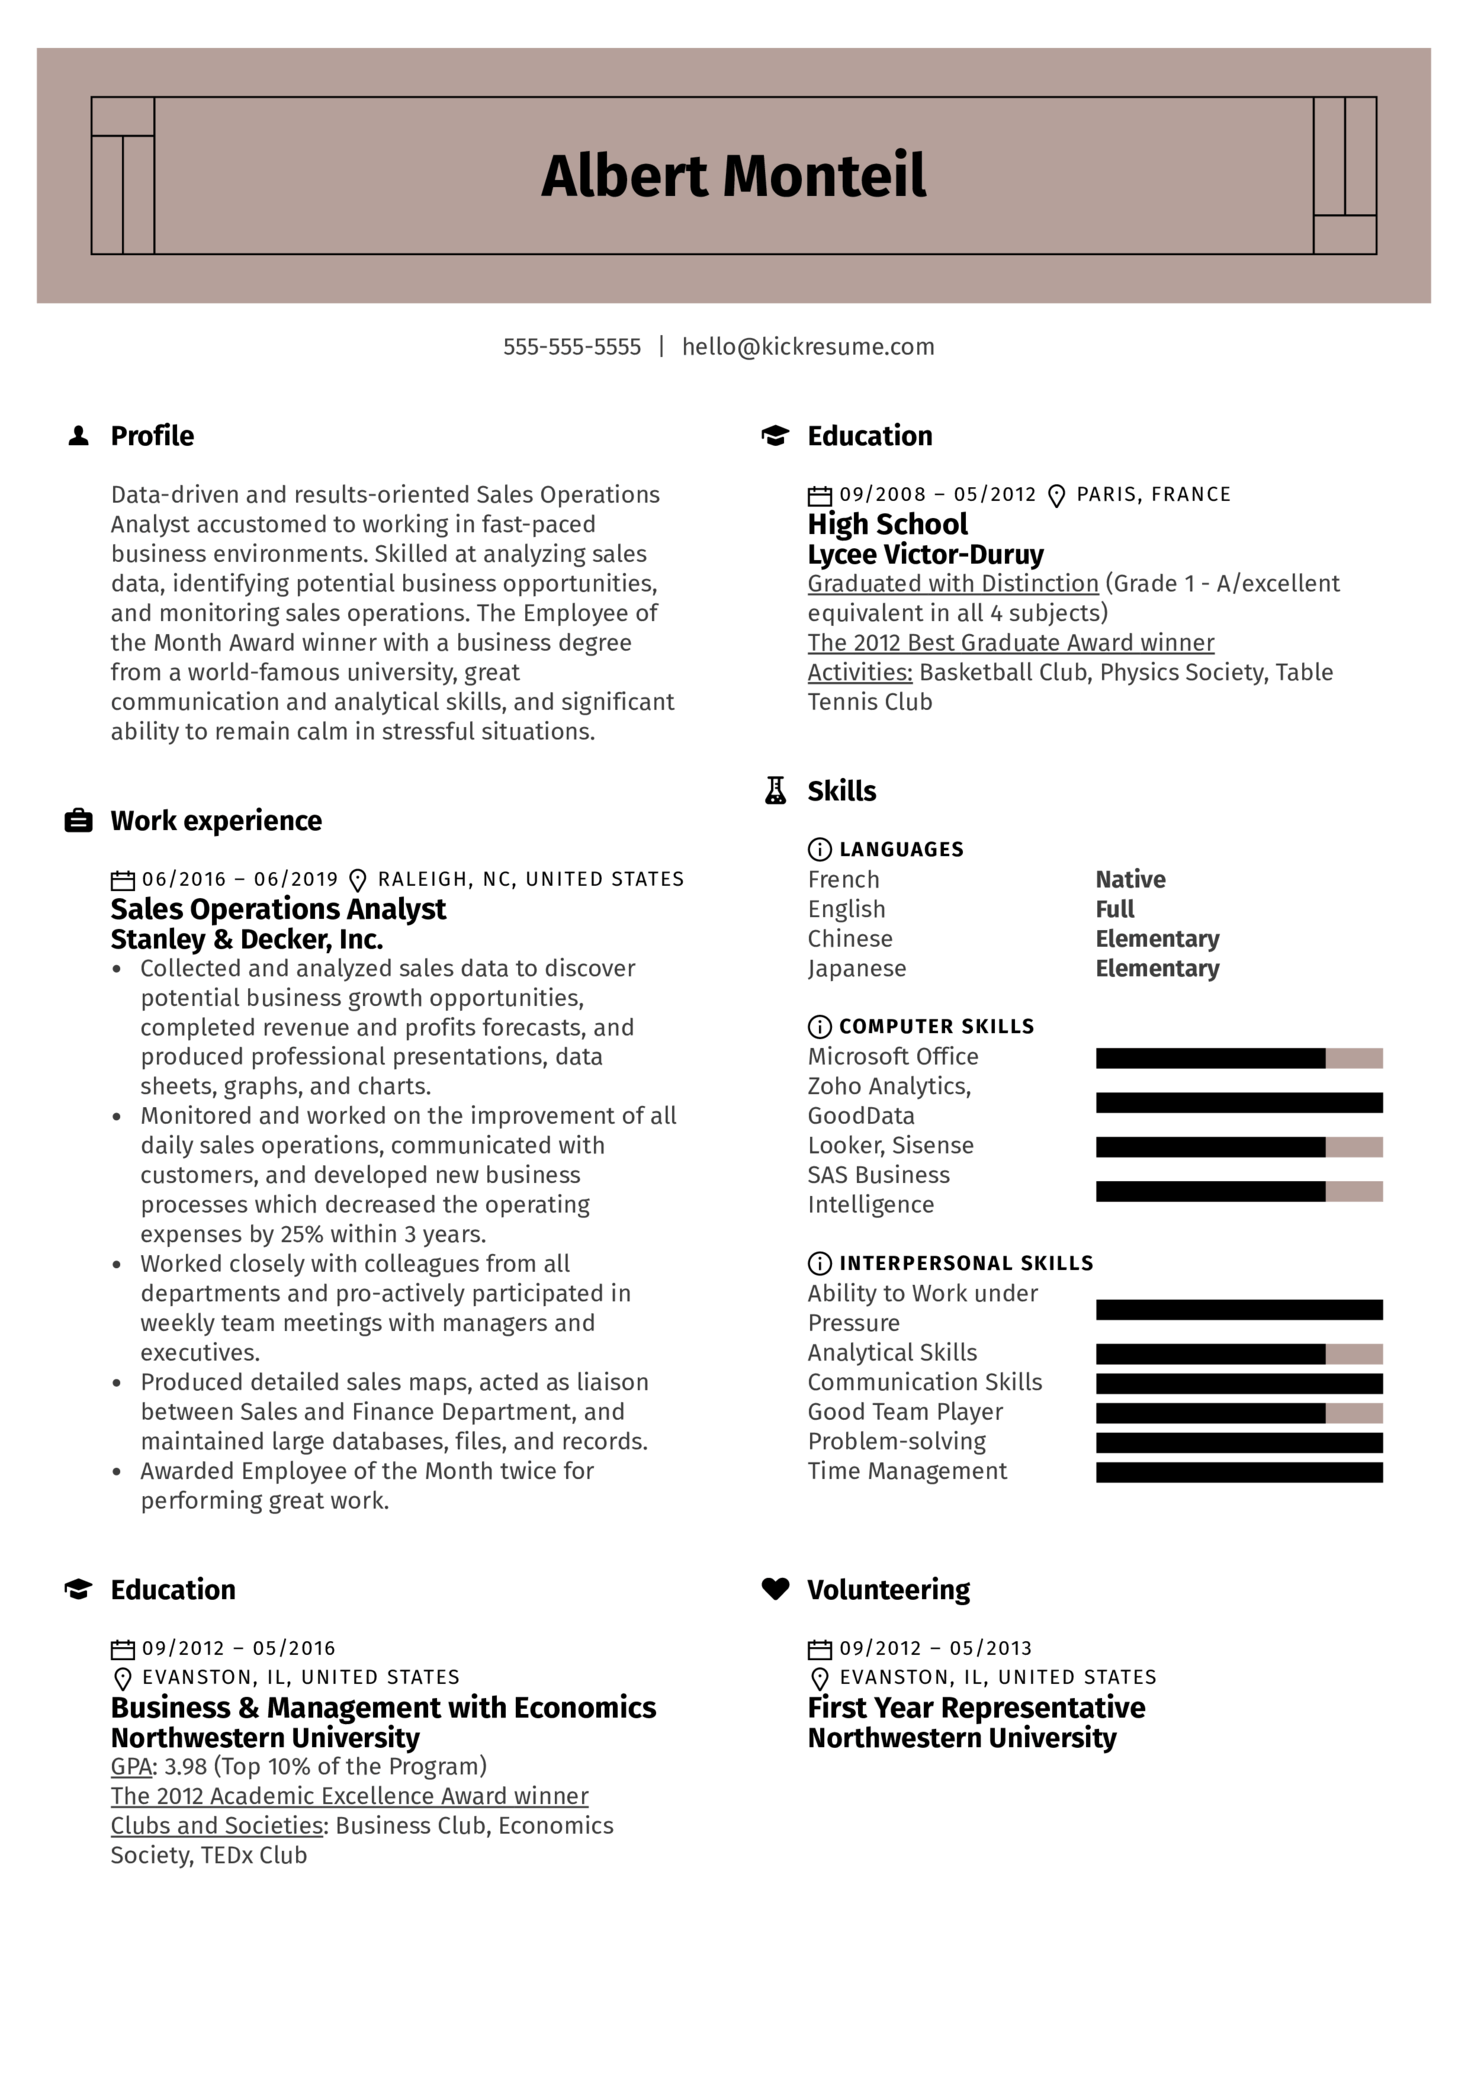 Sales Operations Analyst Resume Sample (Part 1)